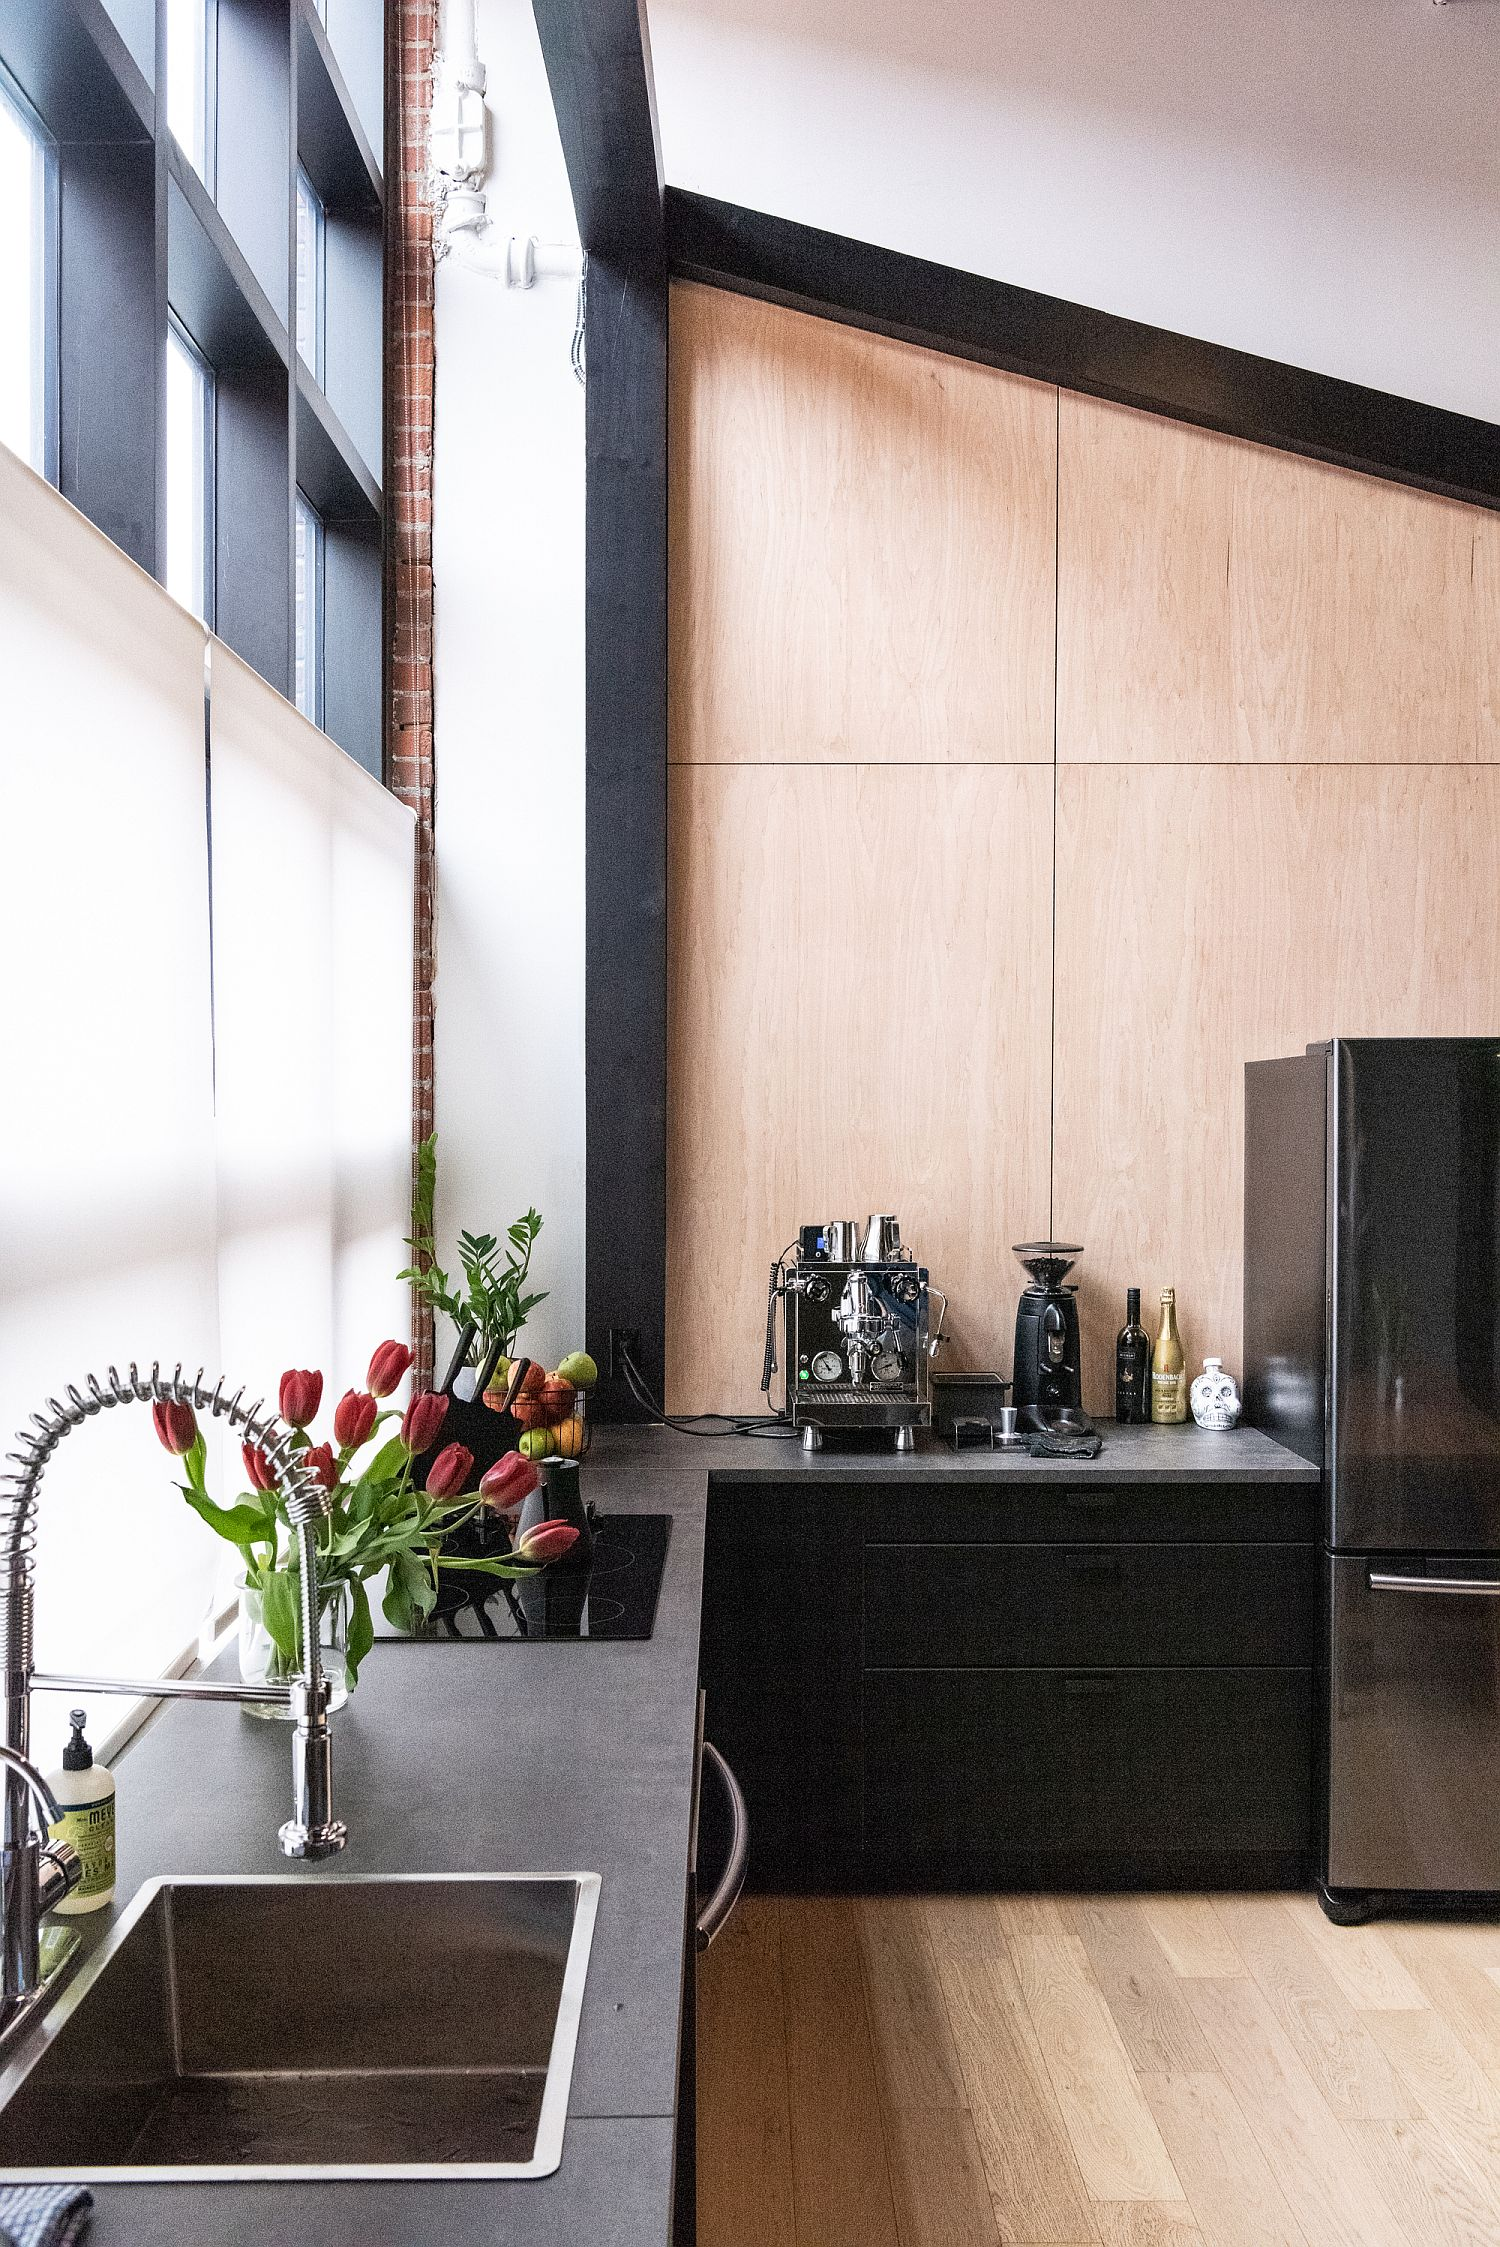 Beautiful wood and black kitchen with ample natural lighting